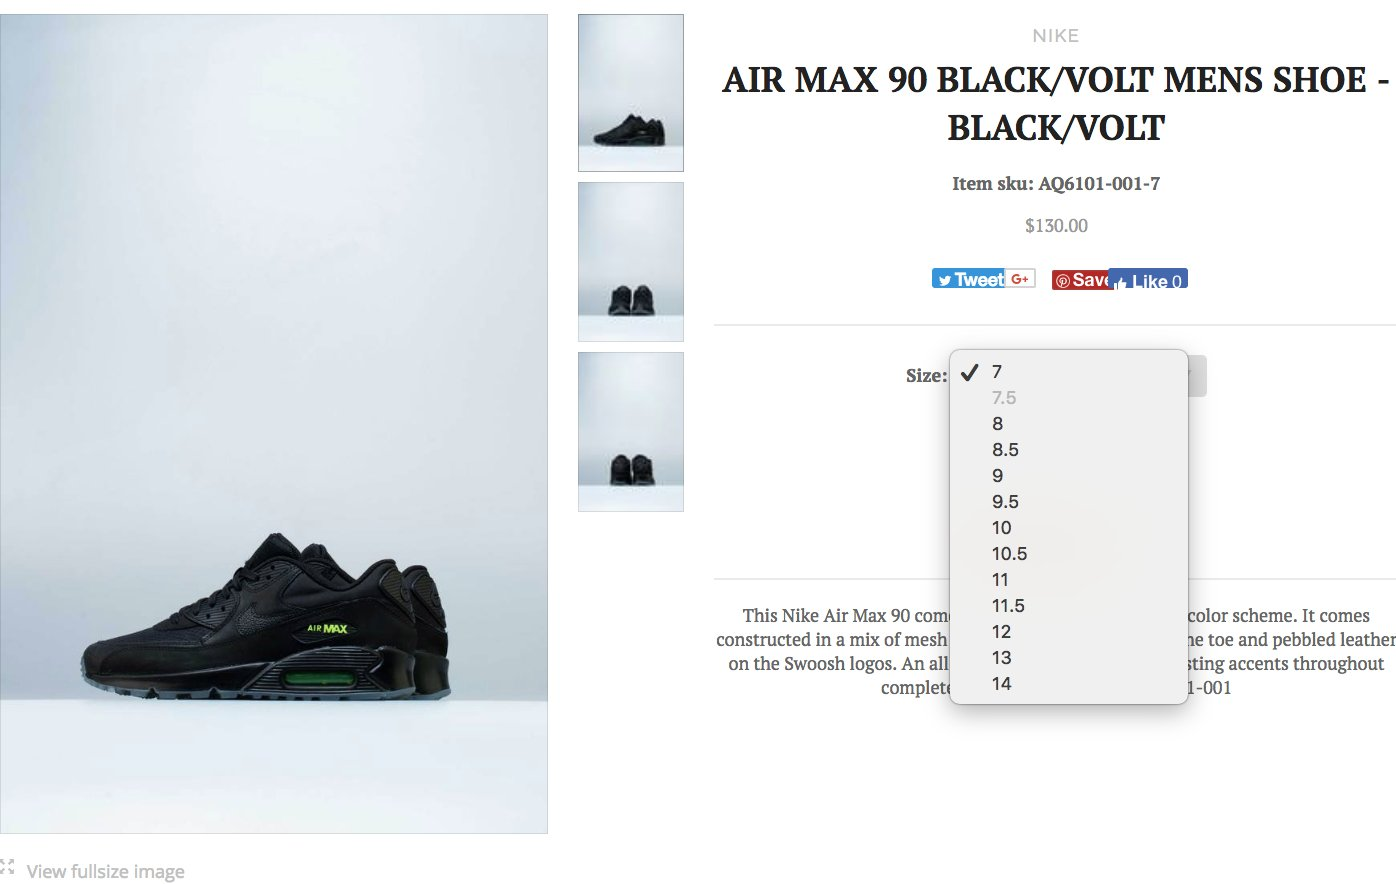 Nike Air Max Night Ops Pack 23 AUG 2018 The Drop Date